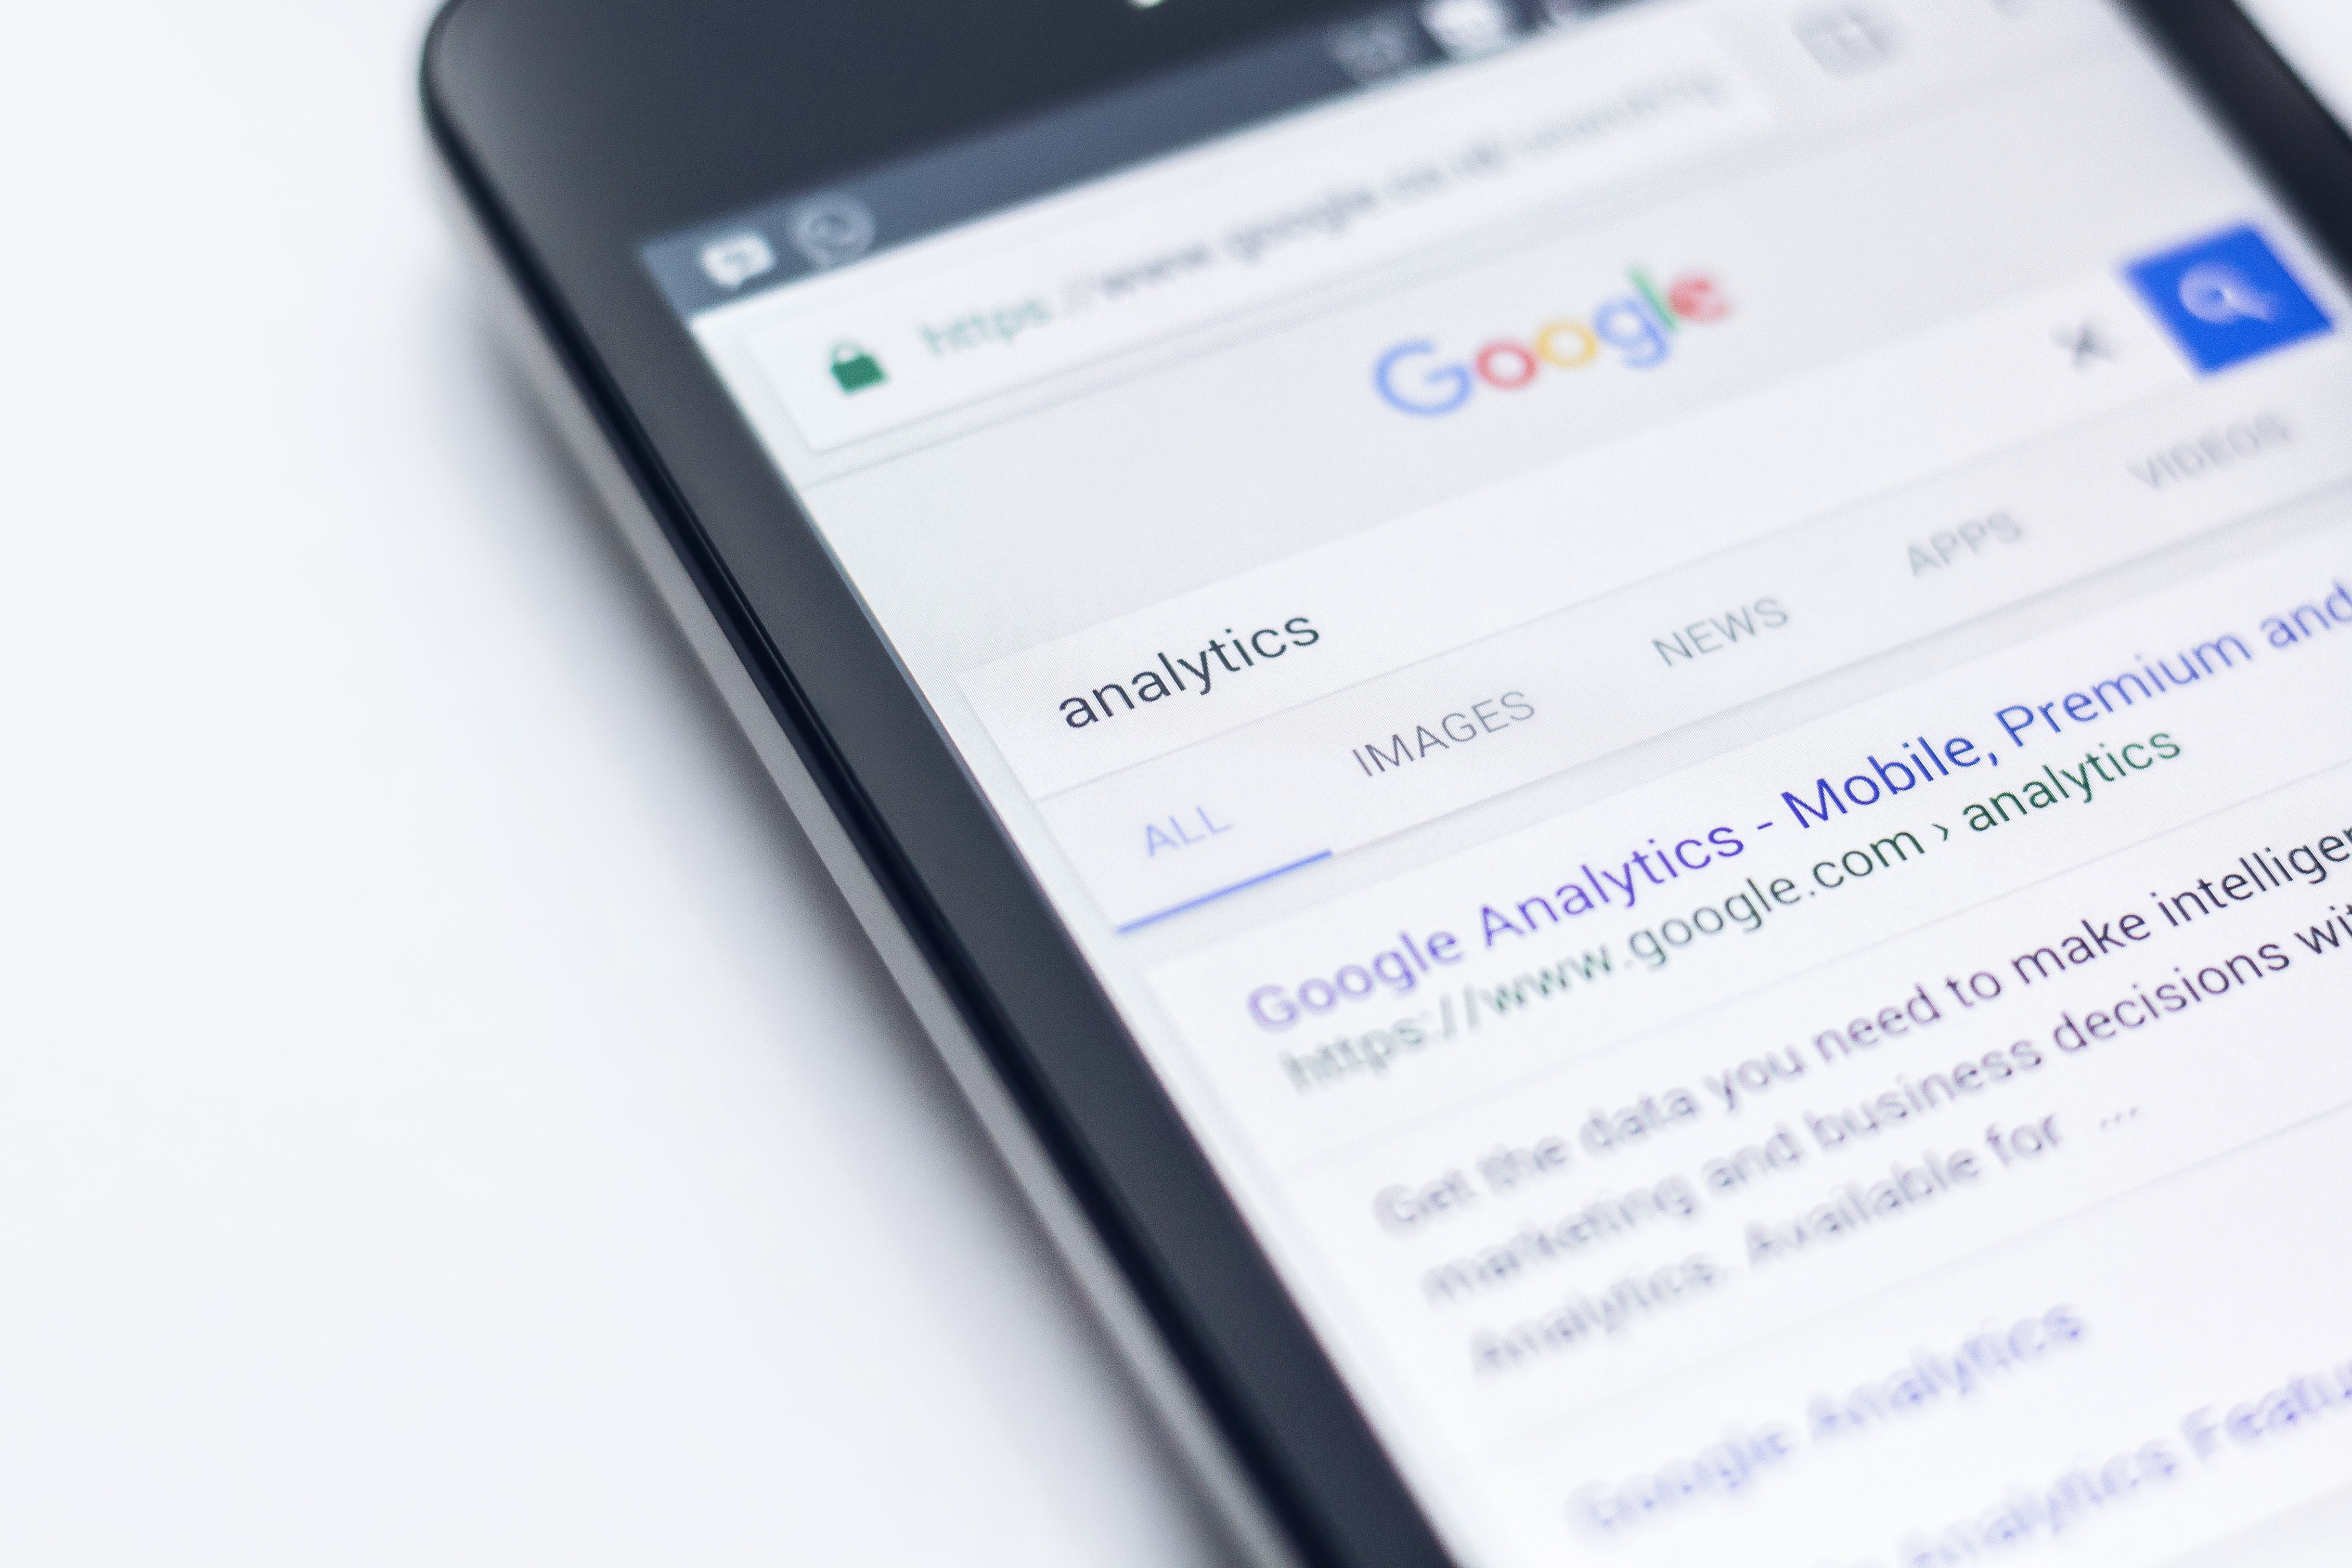 Google's current SEO set-up favors responsive design